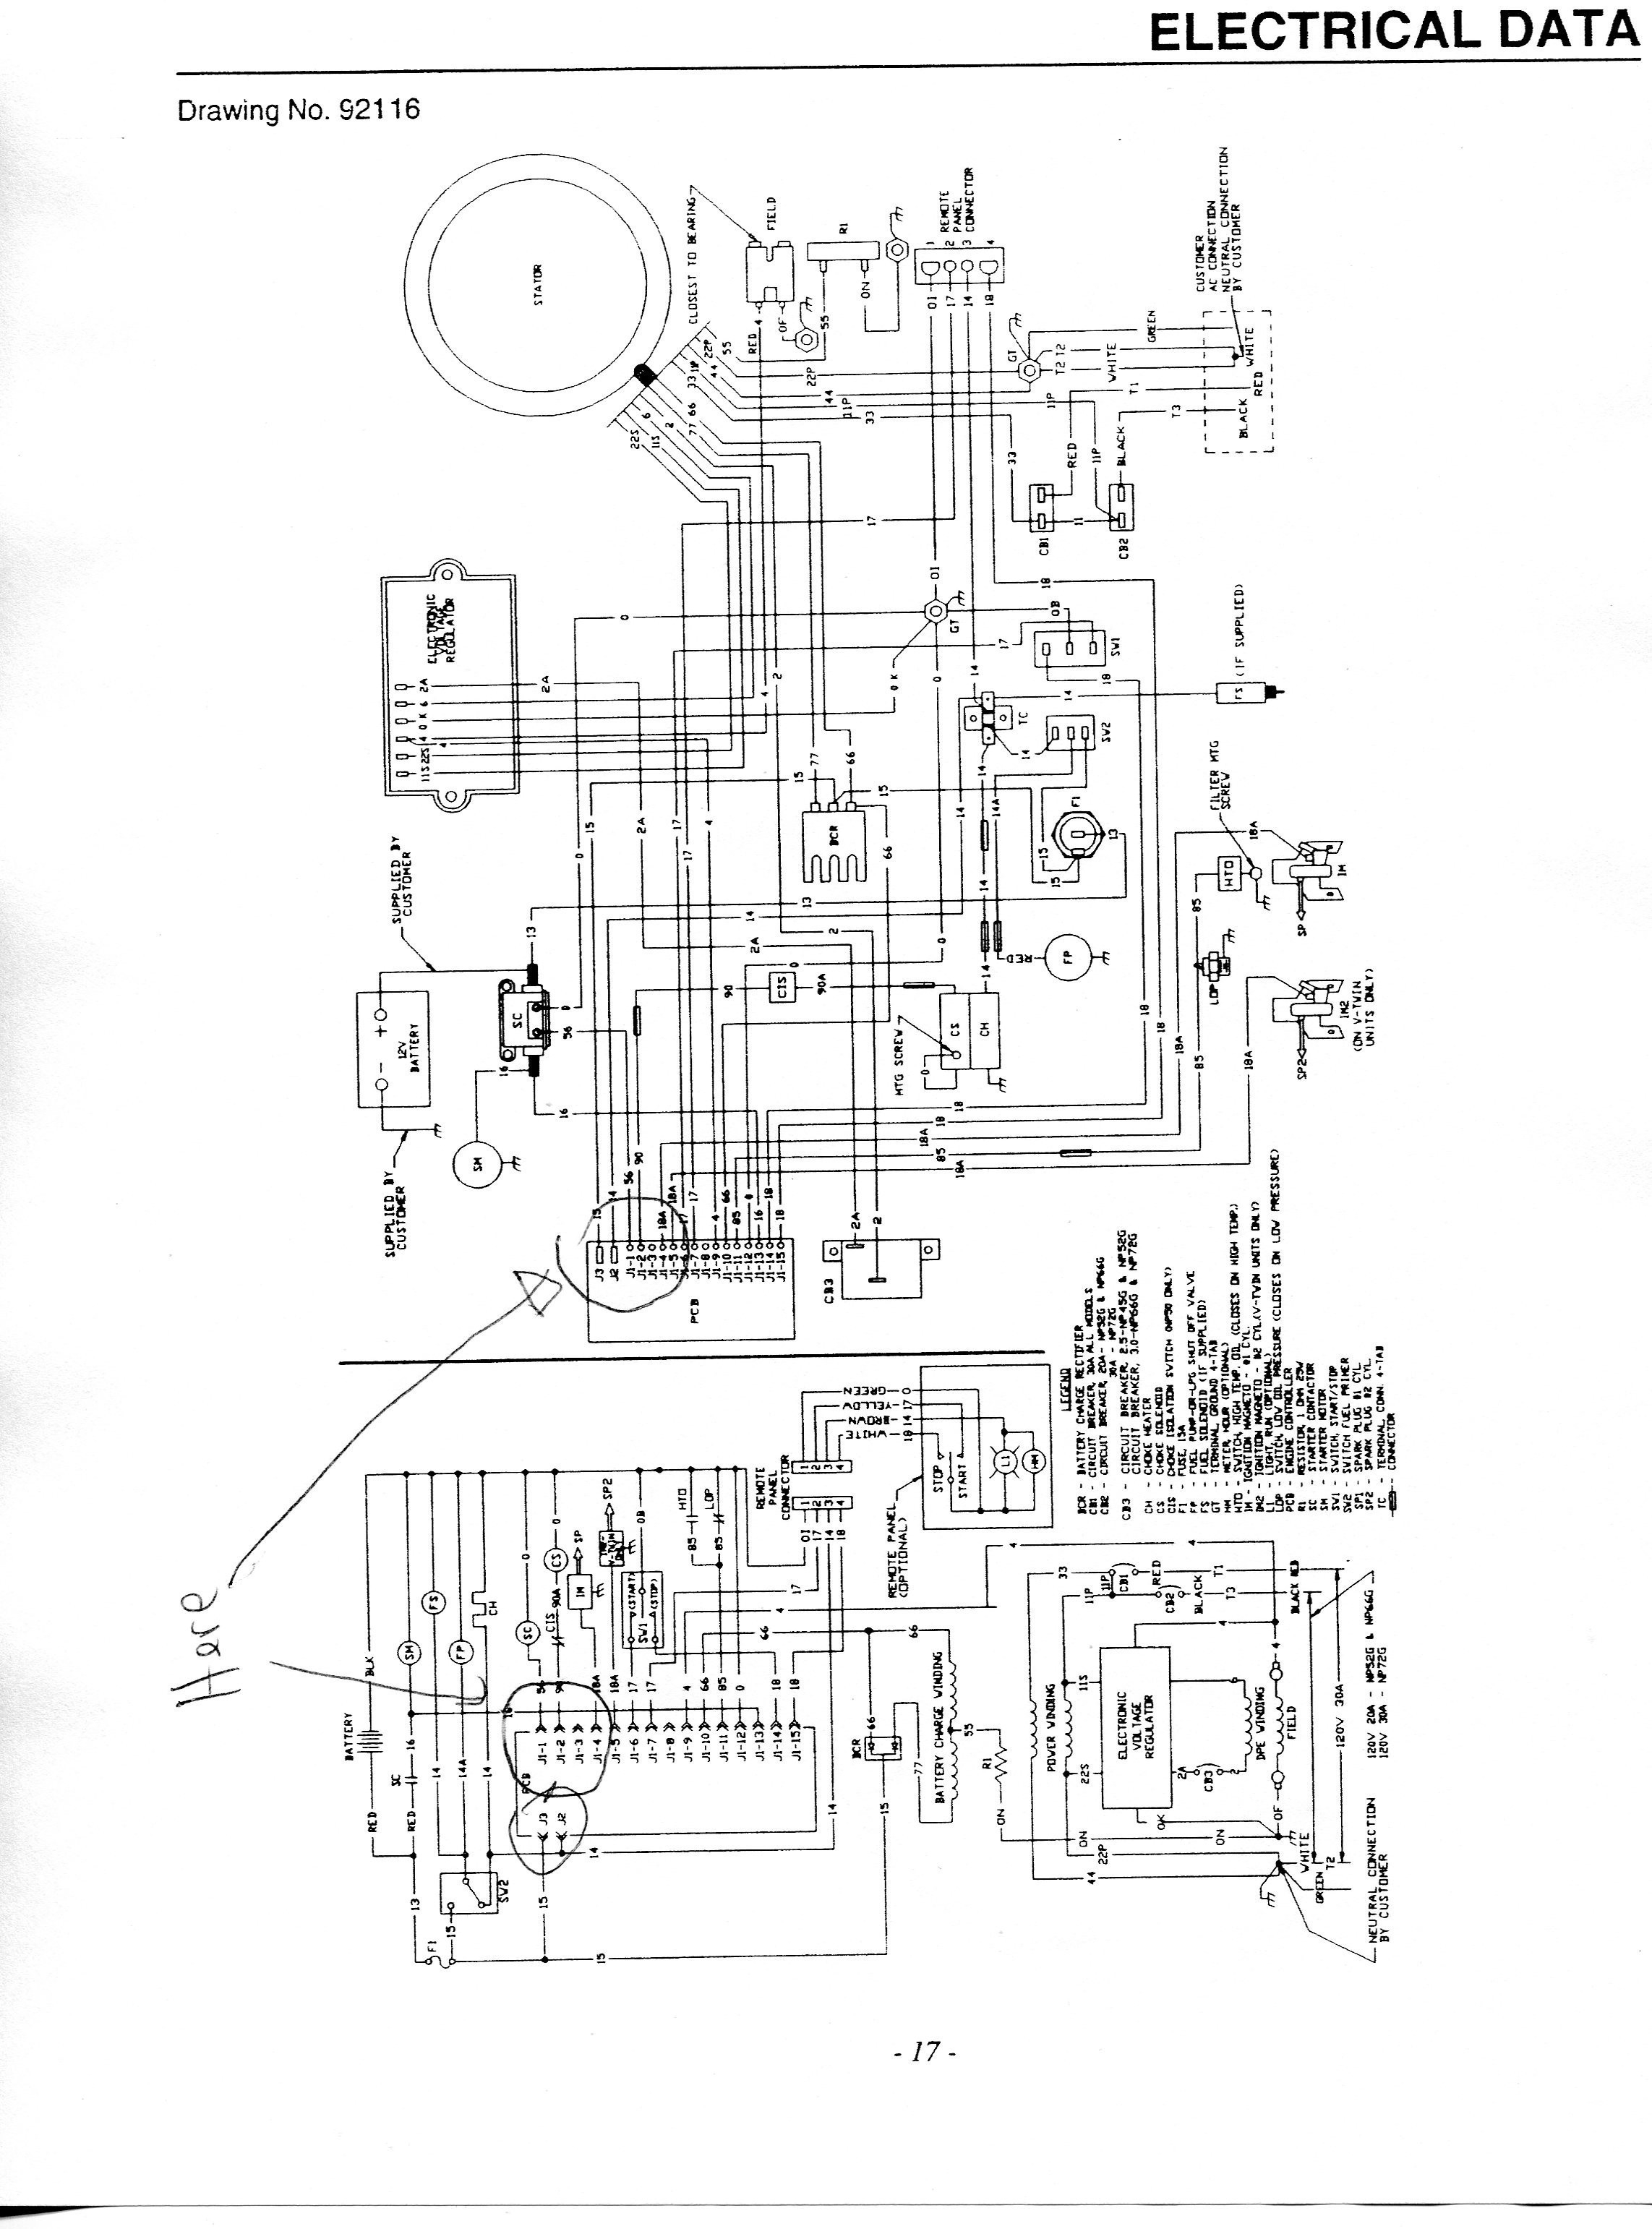 [DIAGRAM] Wiring Diagram For Generac Transfer Switch FULL